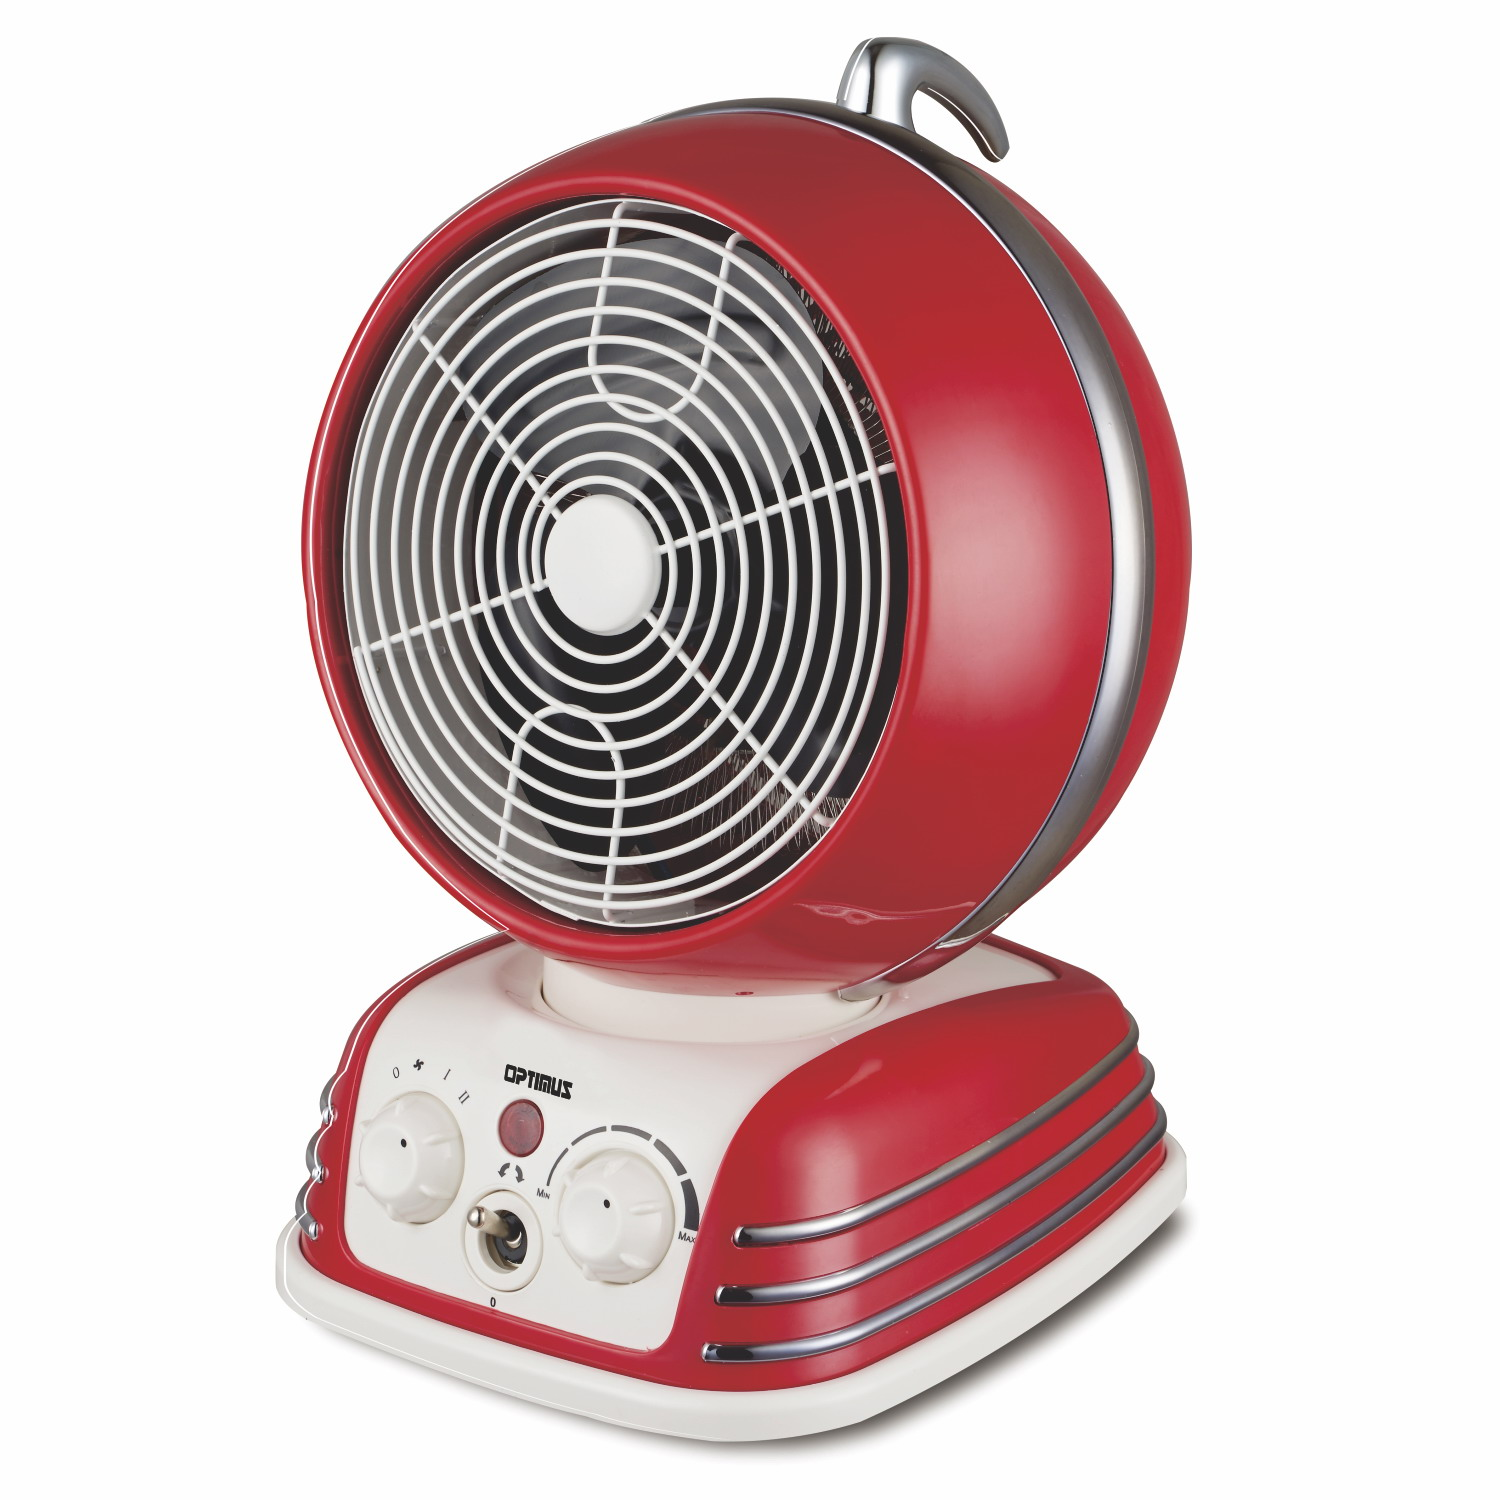 OPTIMUS H1418 RED RETRO DESIGN OSCILLATING FAN HEATER WITH 2